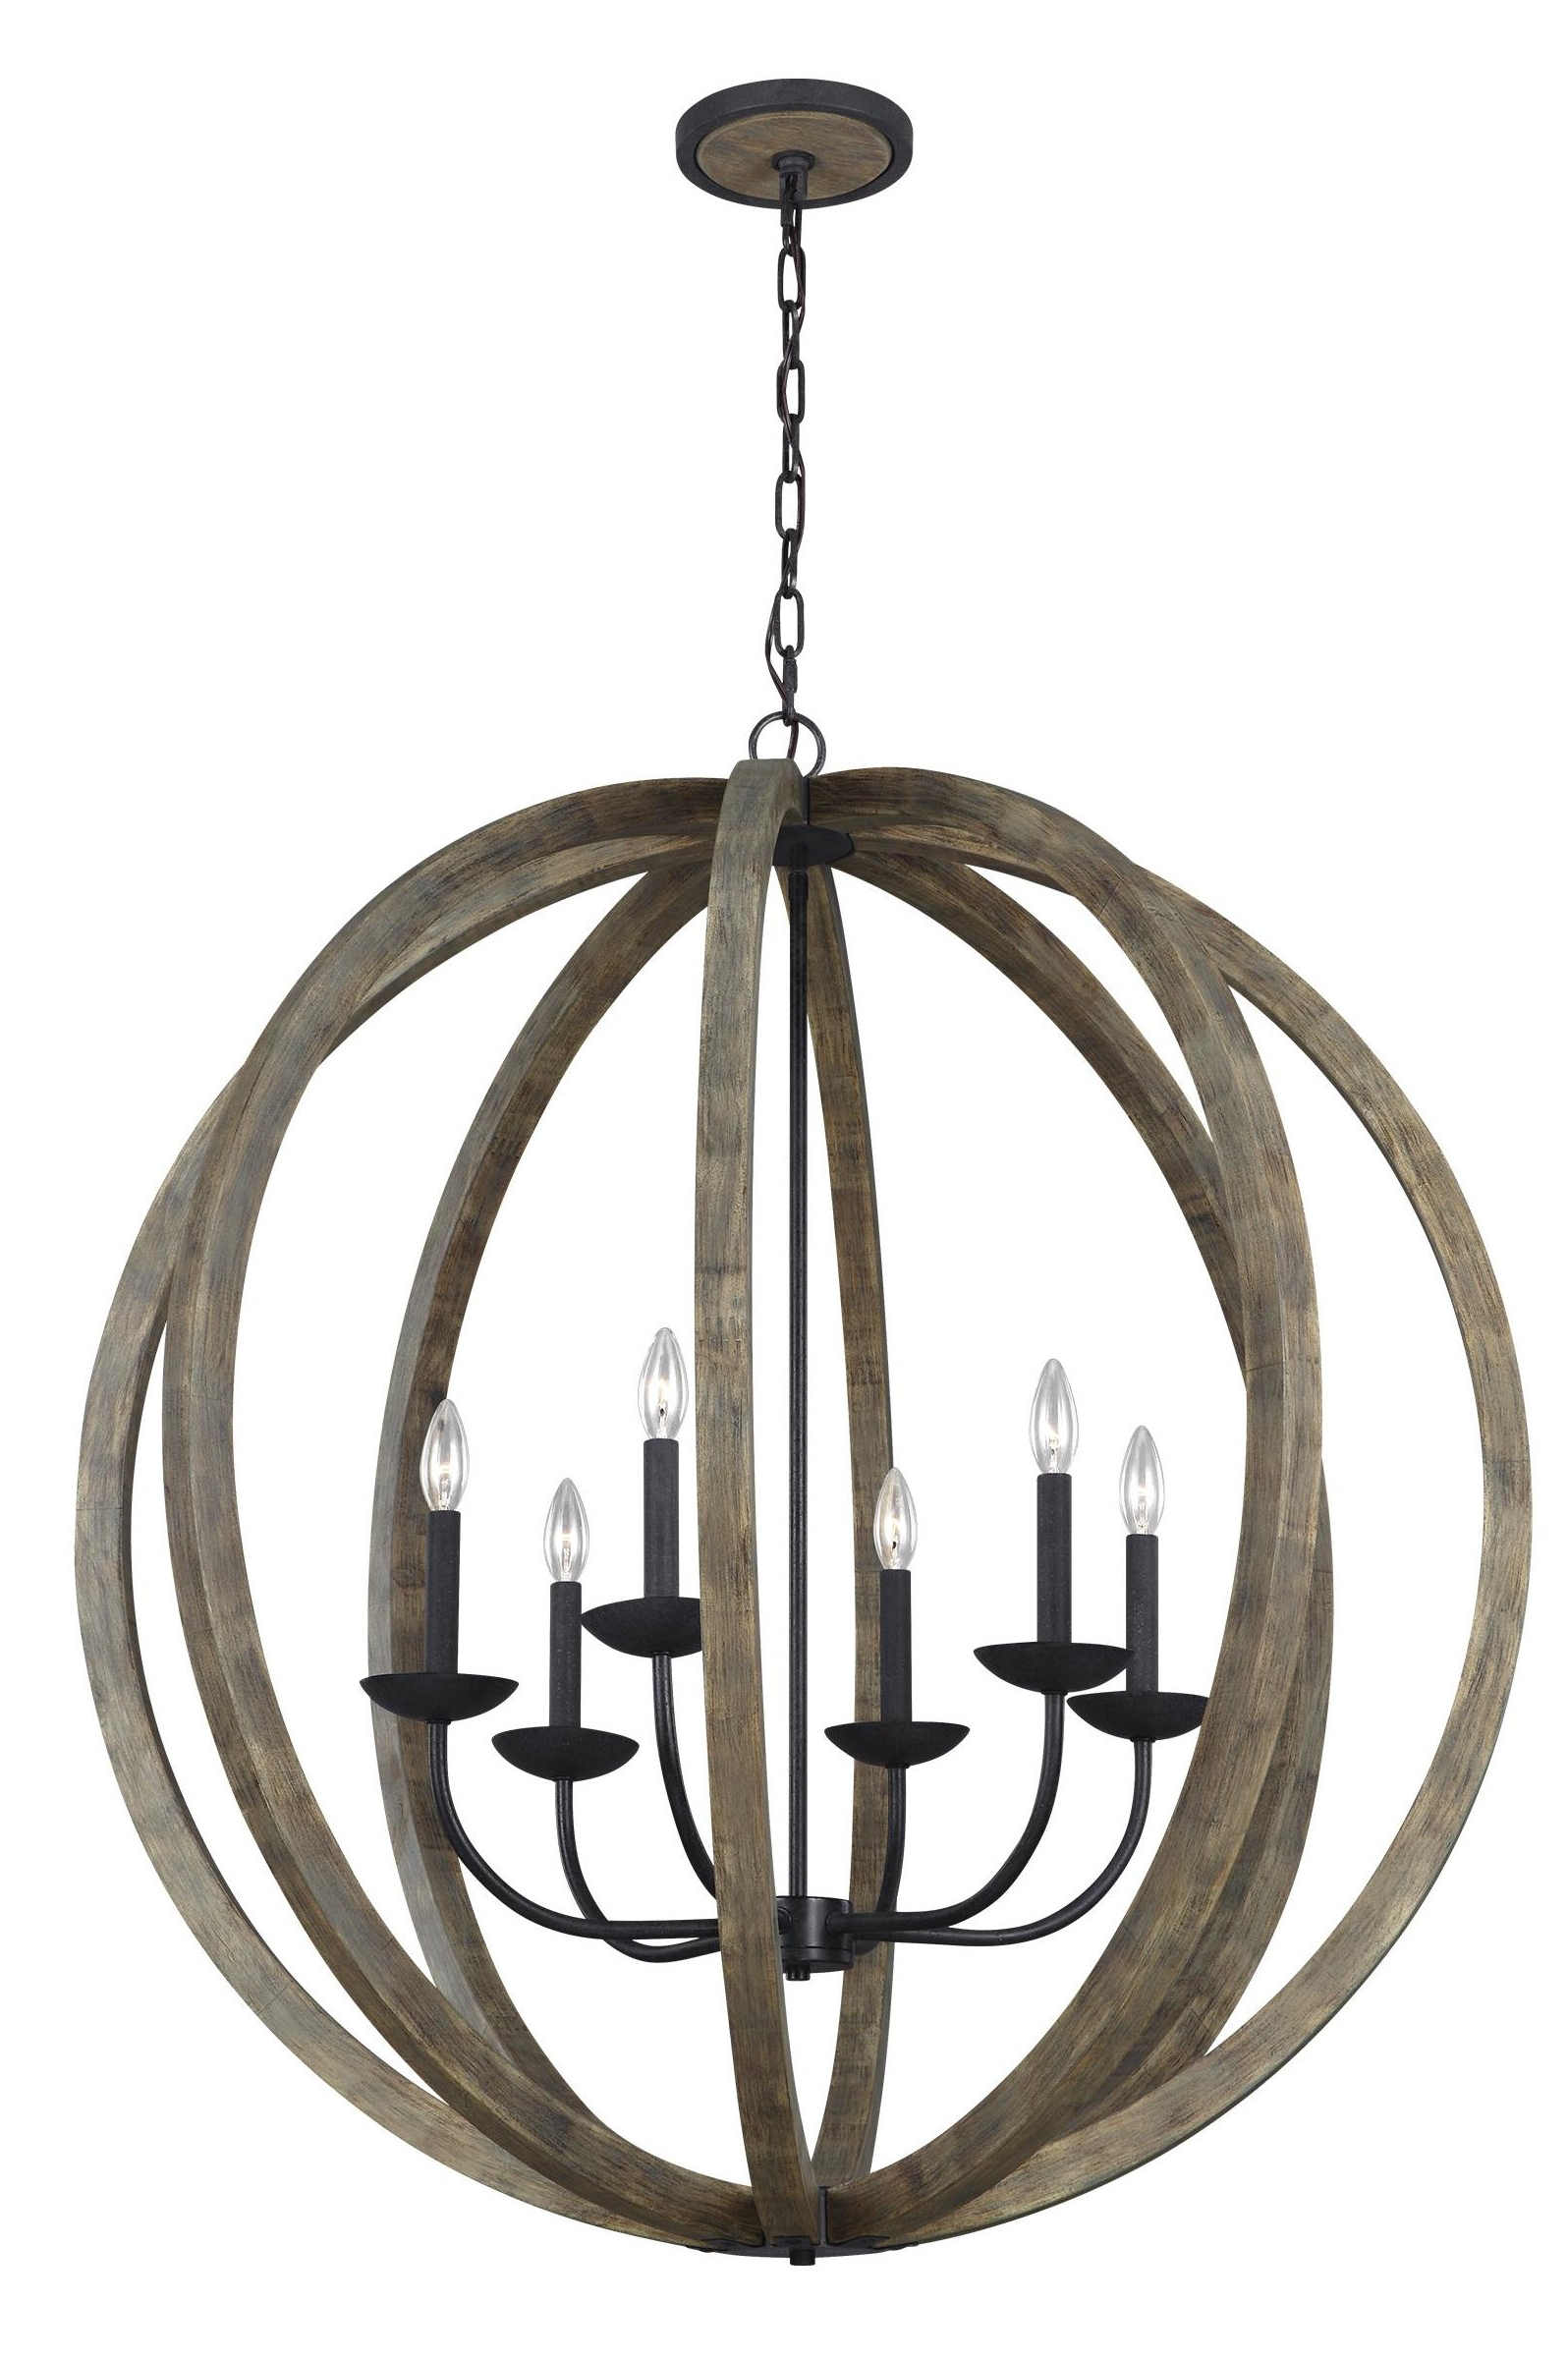 Flavien 6 Light Globe Chandelier For Most Current Ricciardo 4 Light Globe Chandeliers (View 5 of 20)